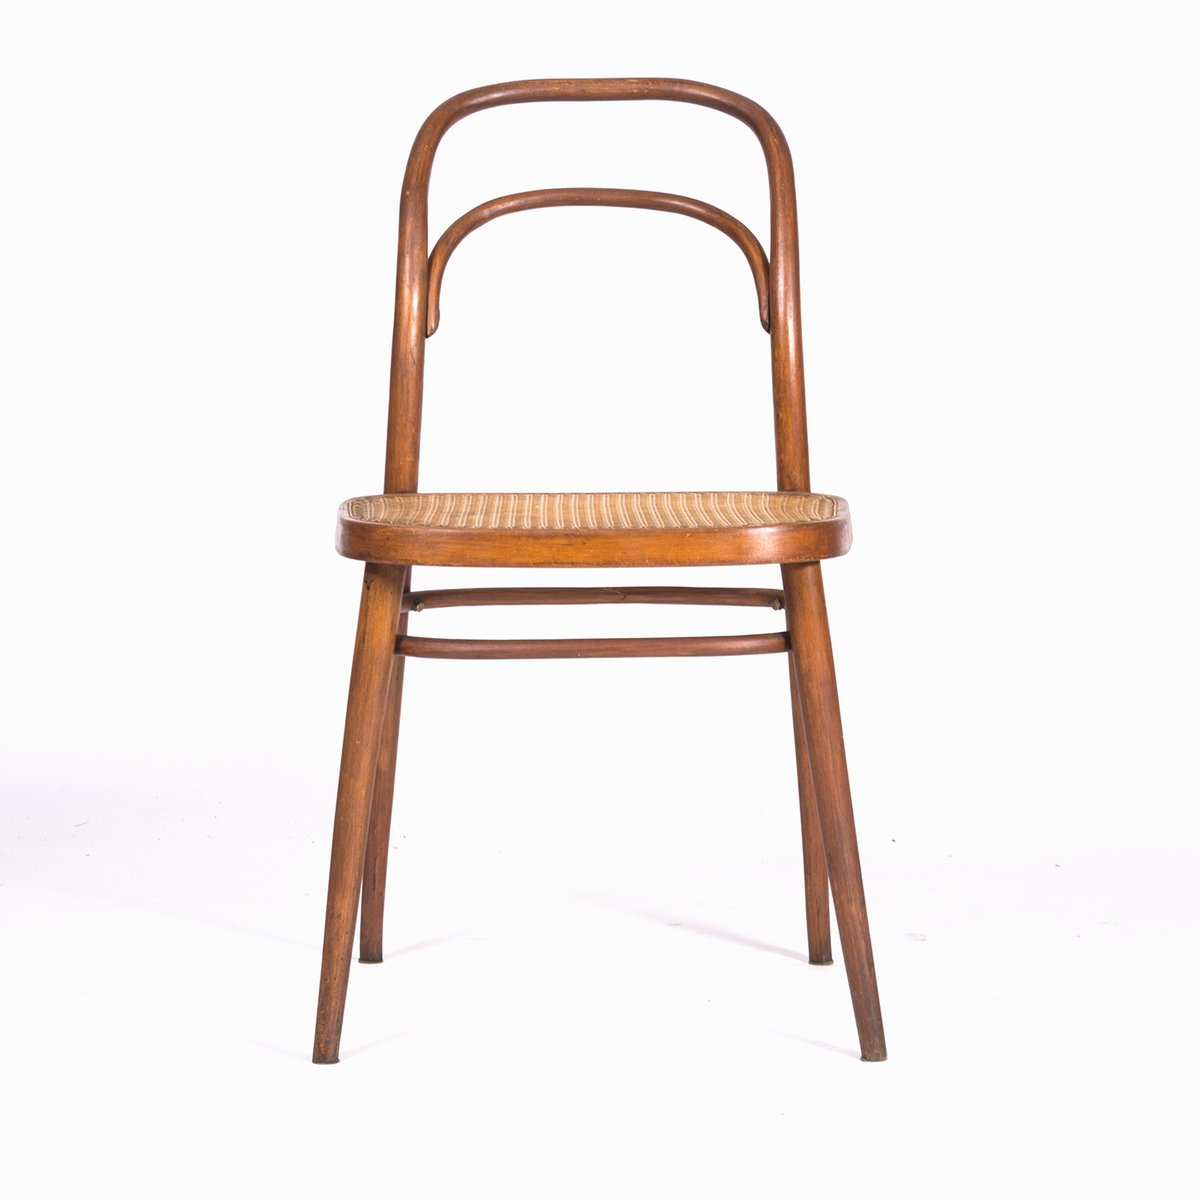 Vintage Wooden Chair From Ton